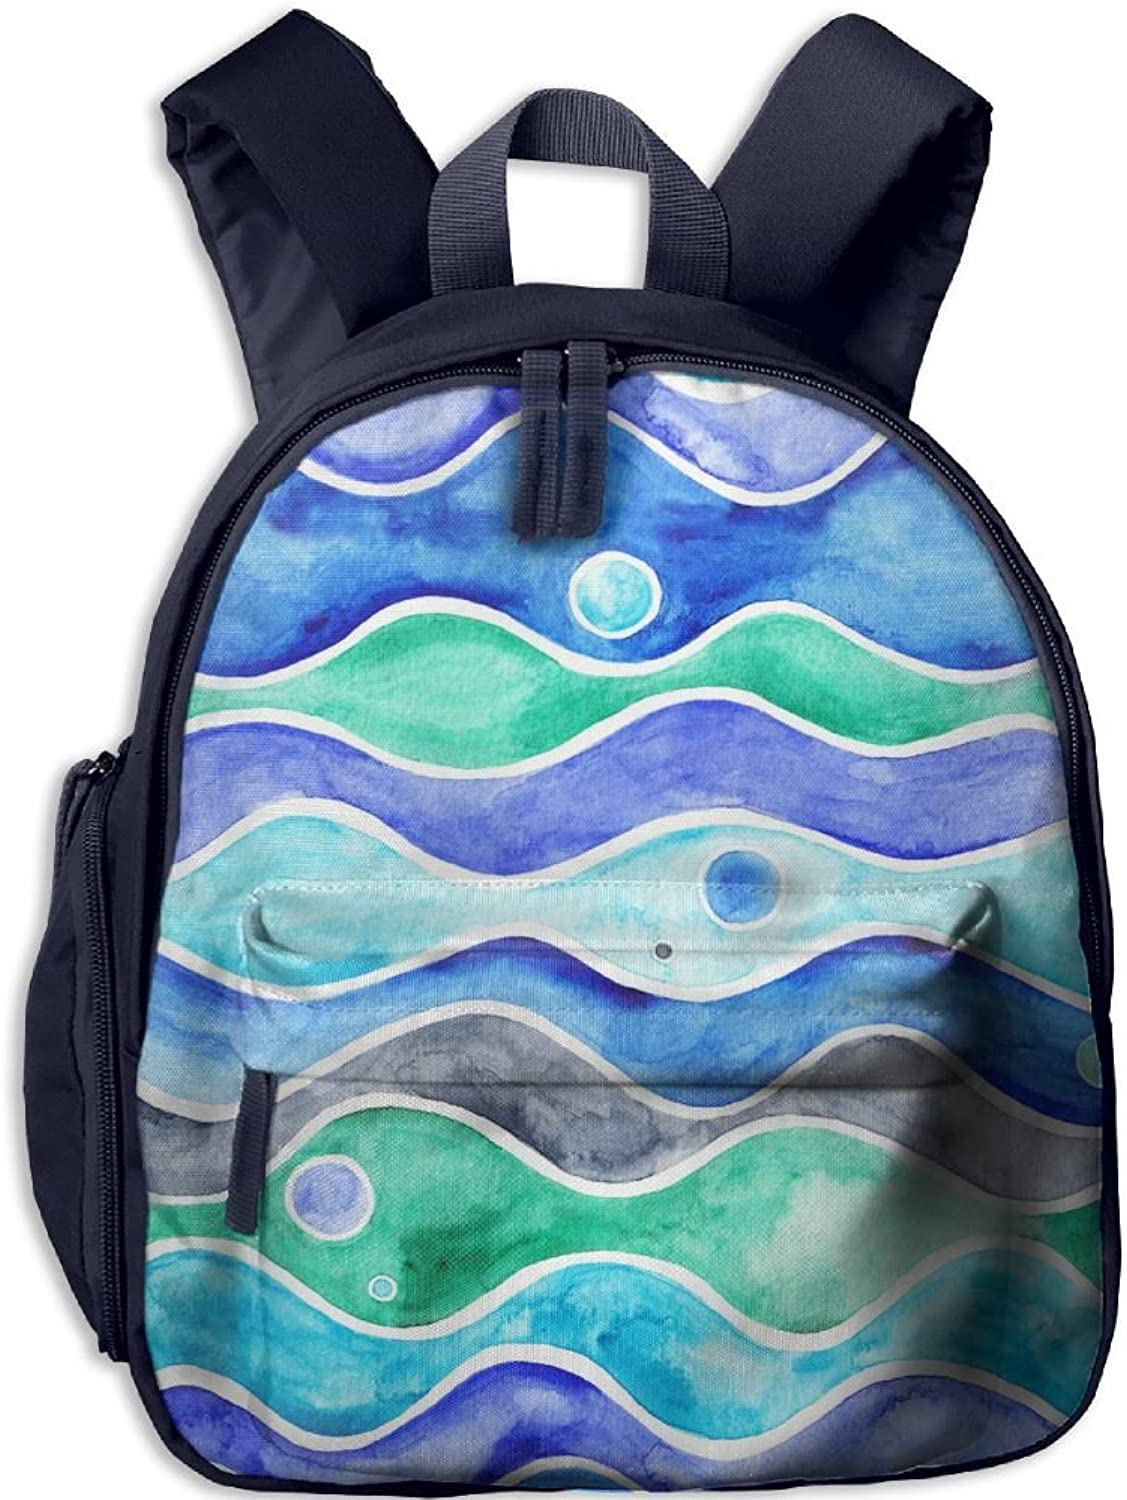 School Bag Ocean Waves(8131) With Durable Travel Camping Backpack For Boys And Girls